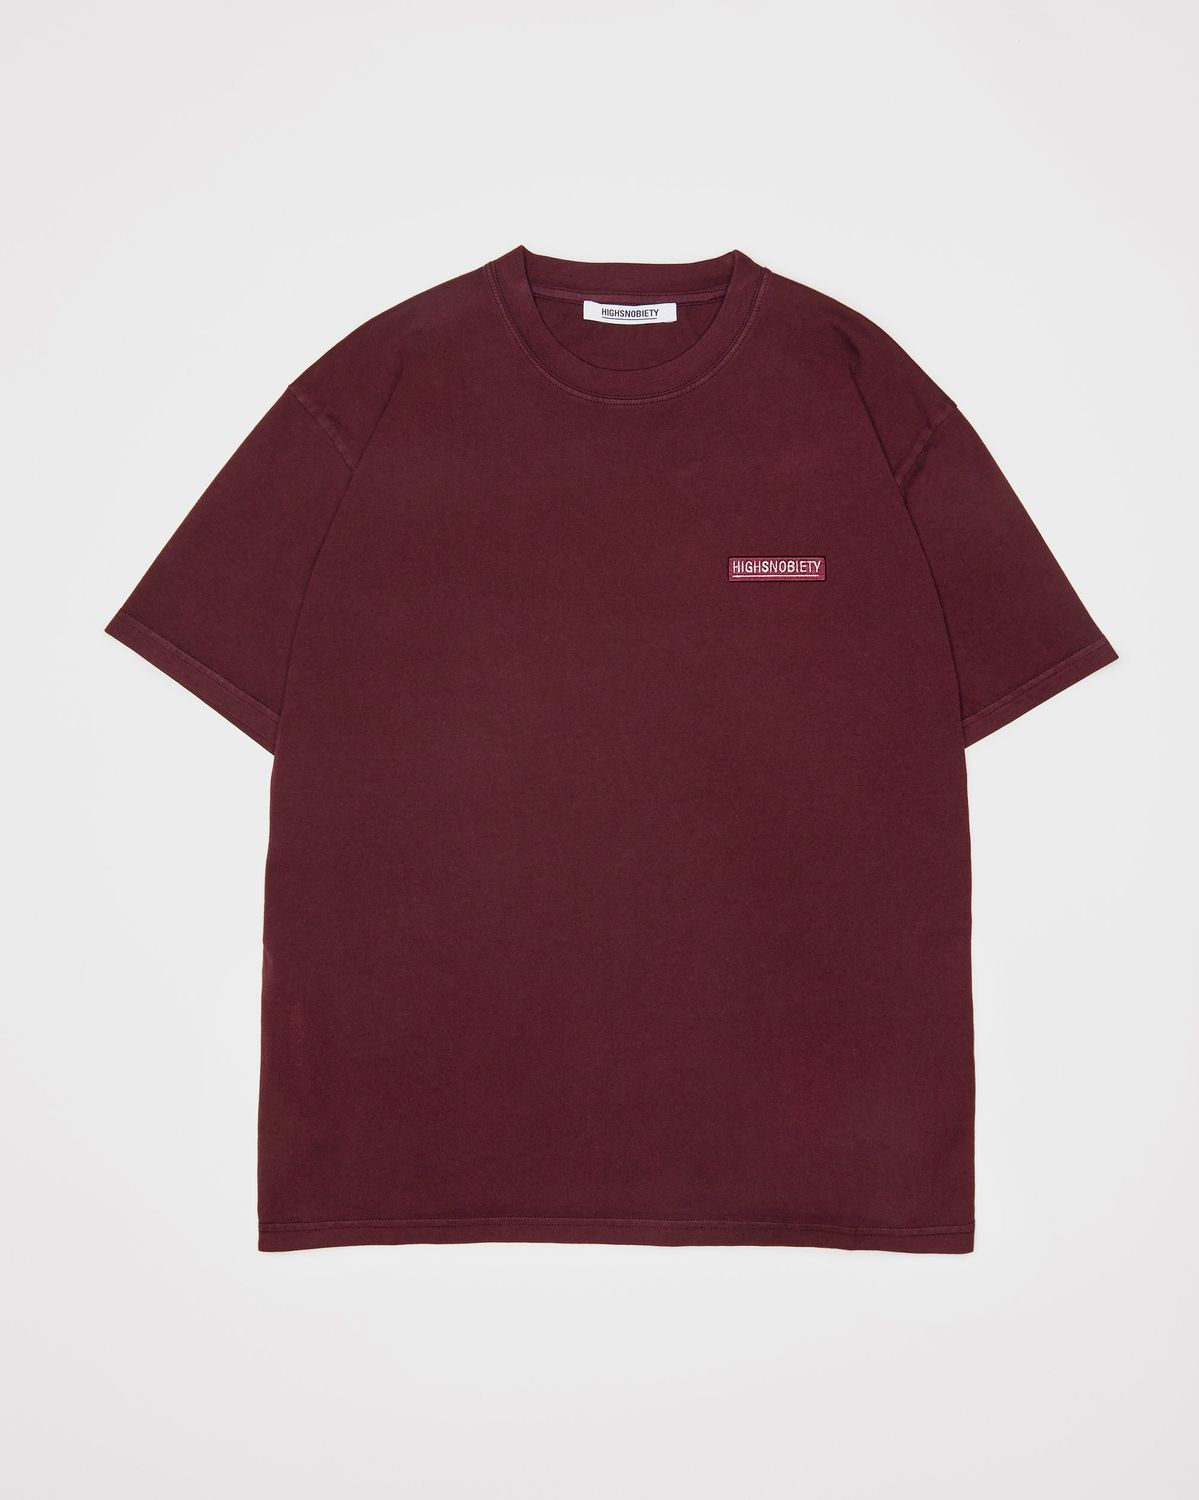 Highsnobiety Staples — T-Shirt Burgundy - Image 1